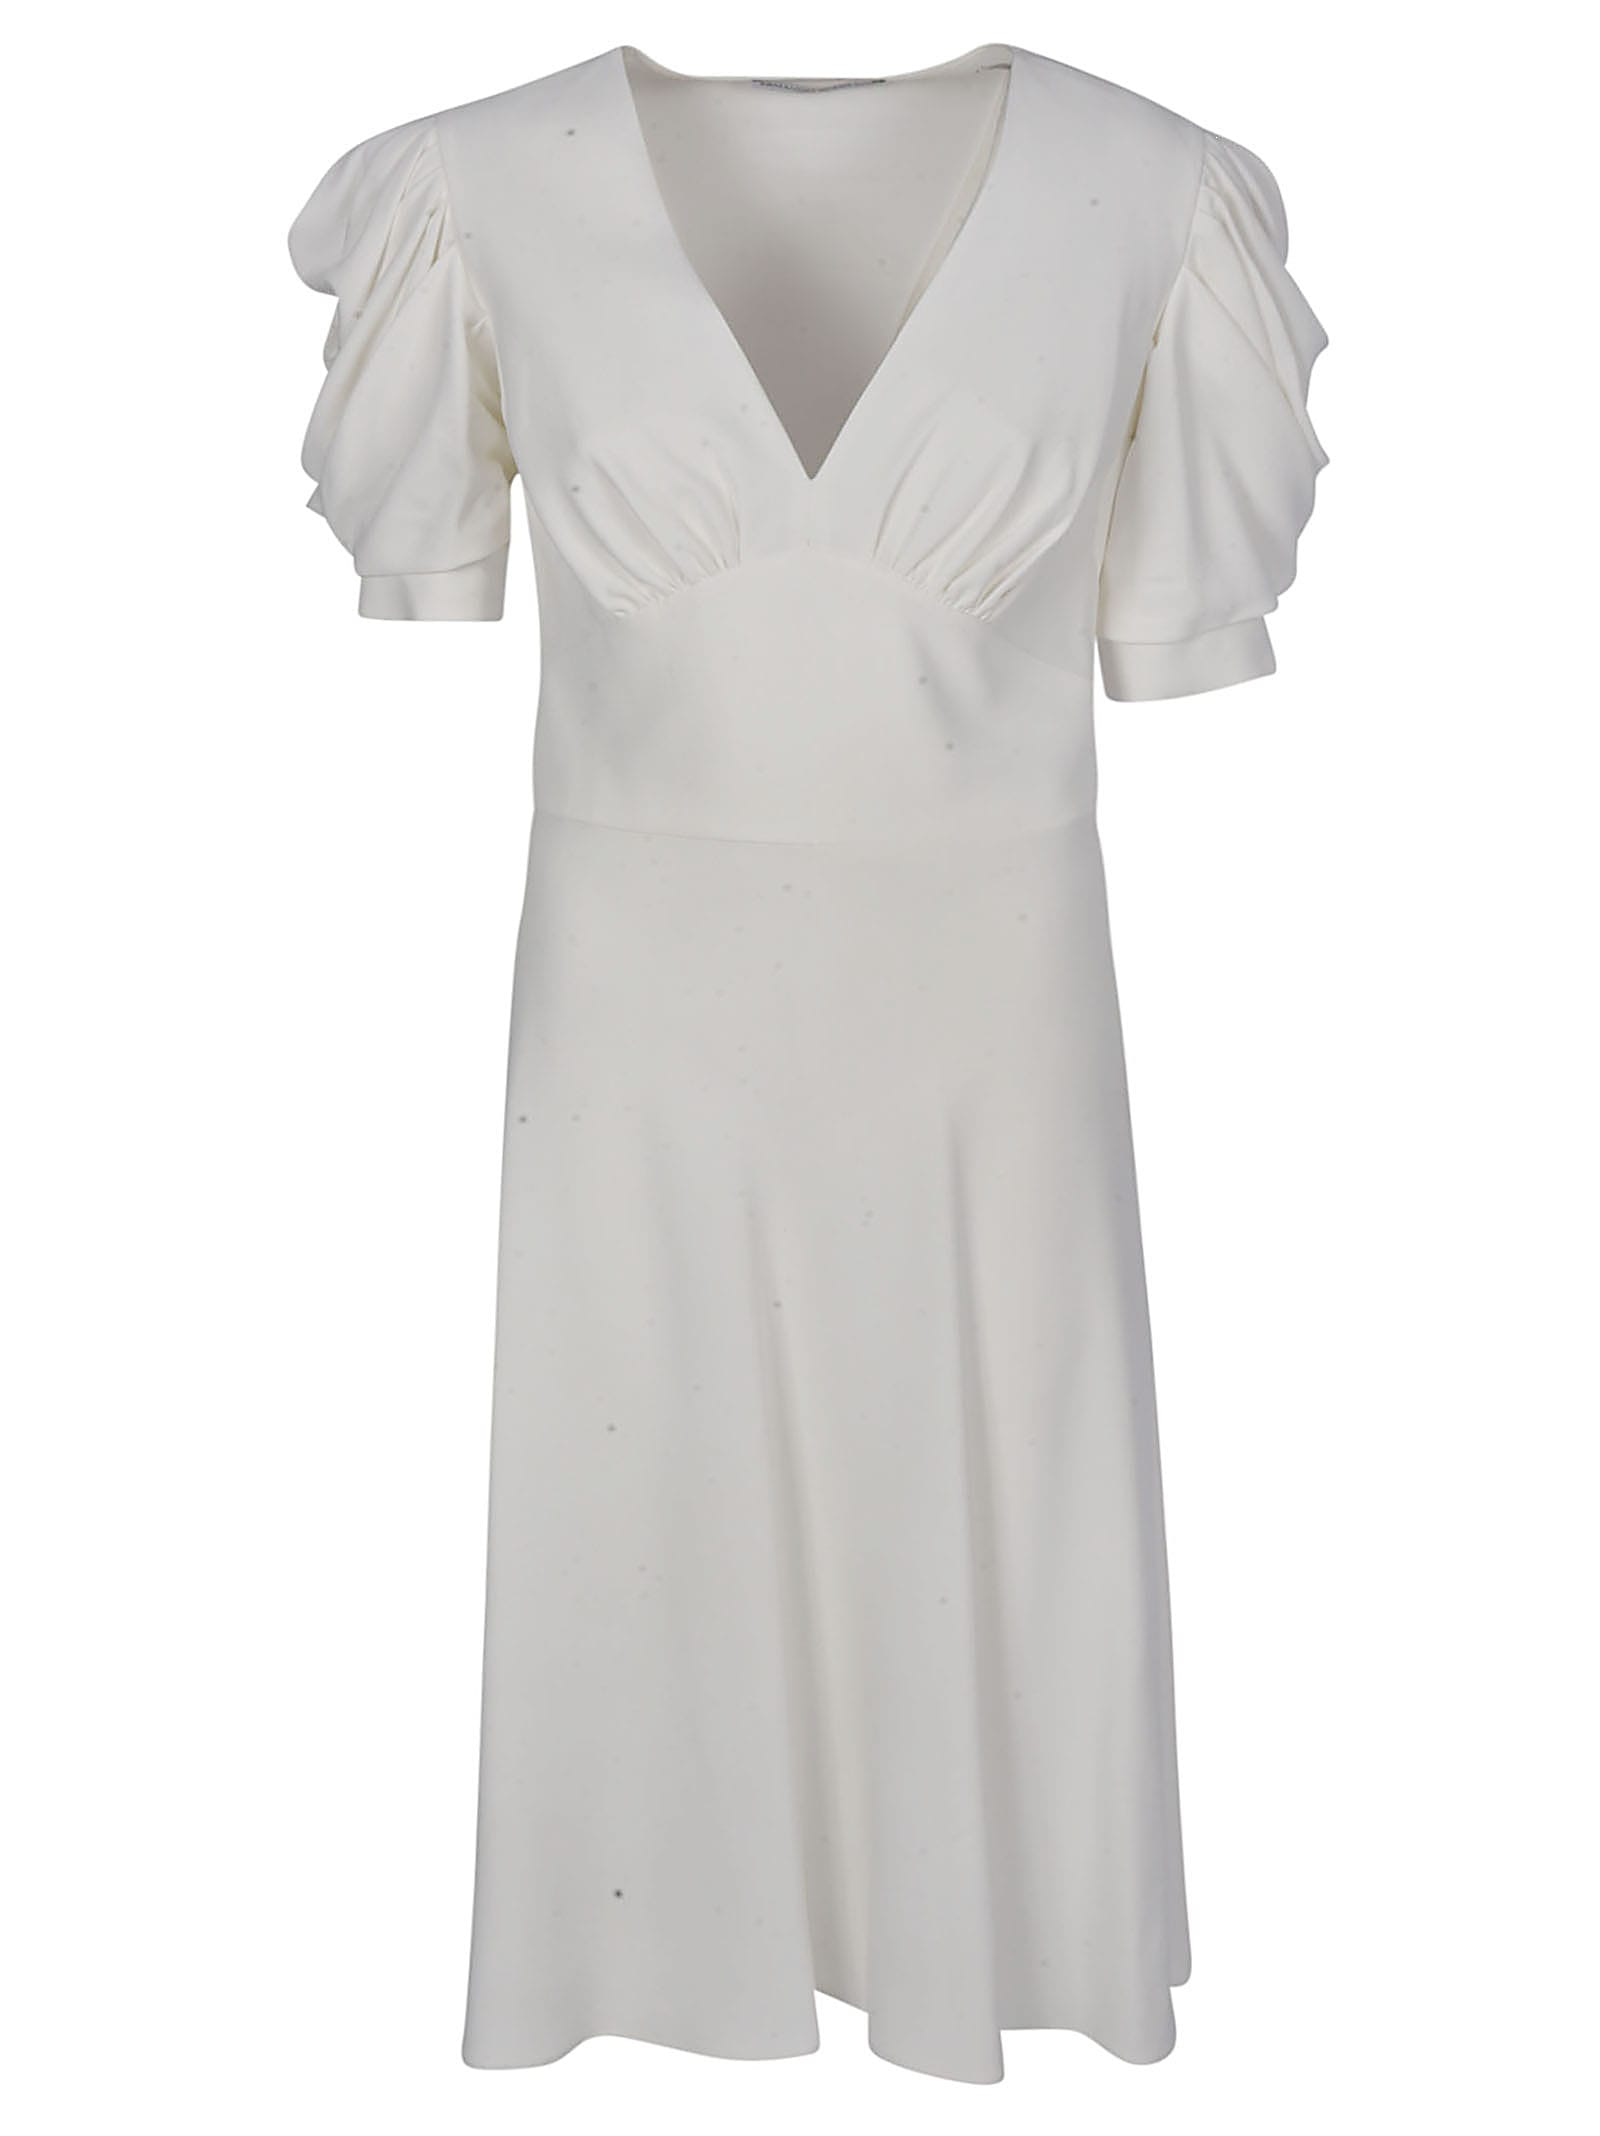 Buy Ermanno Scervino Ruffled Sleeve Dress online, shop Ermanno Scervino with free shipping